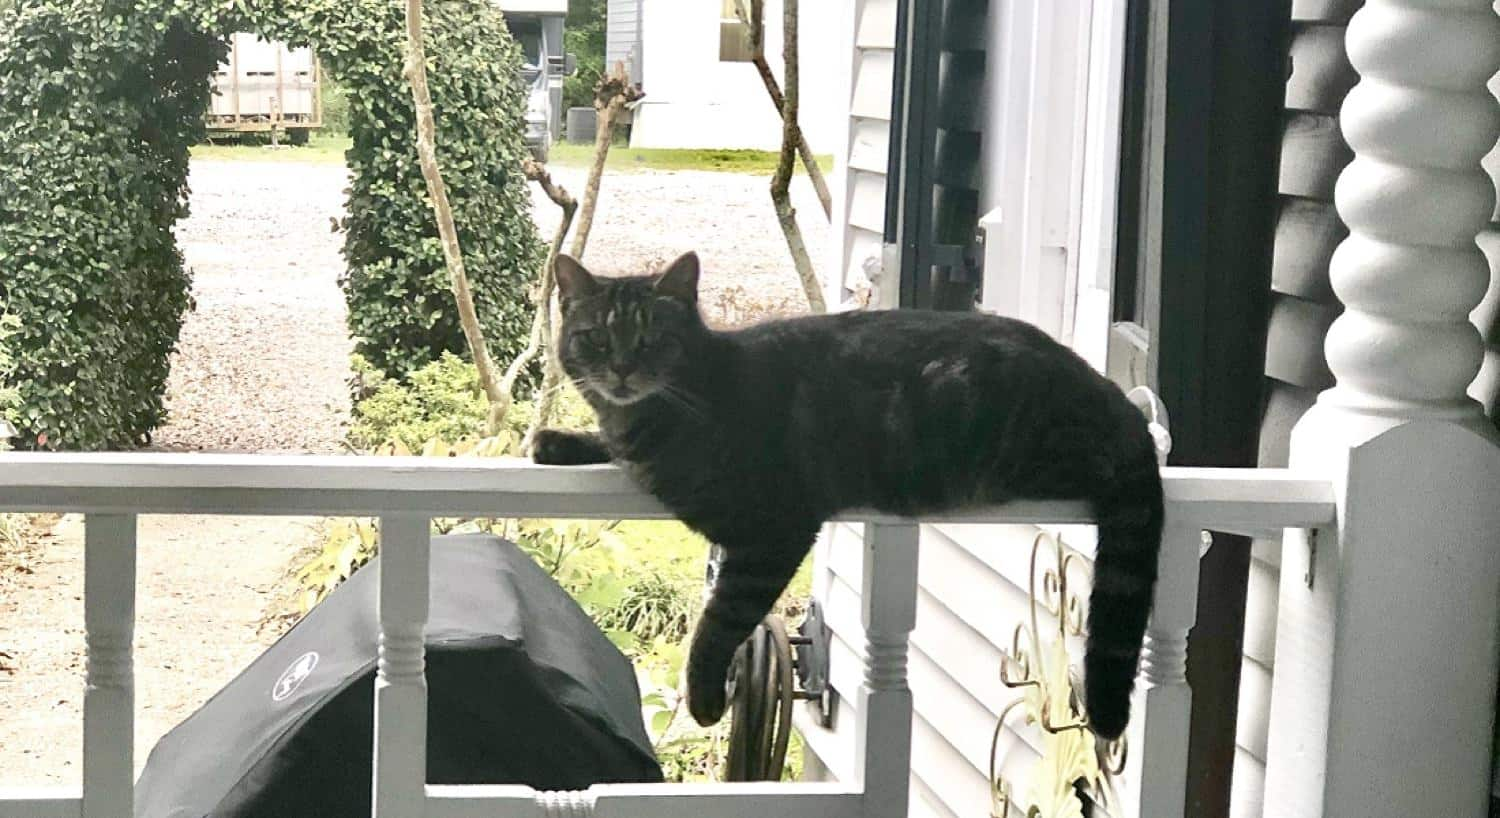 Pretty kitty sitting on the ledge of the porch railing